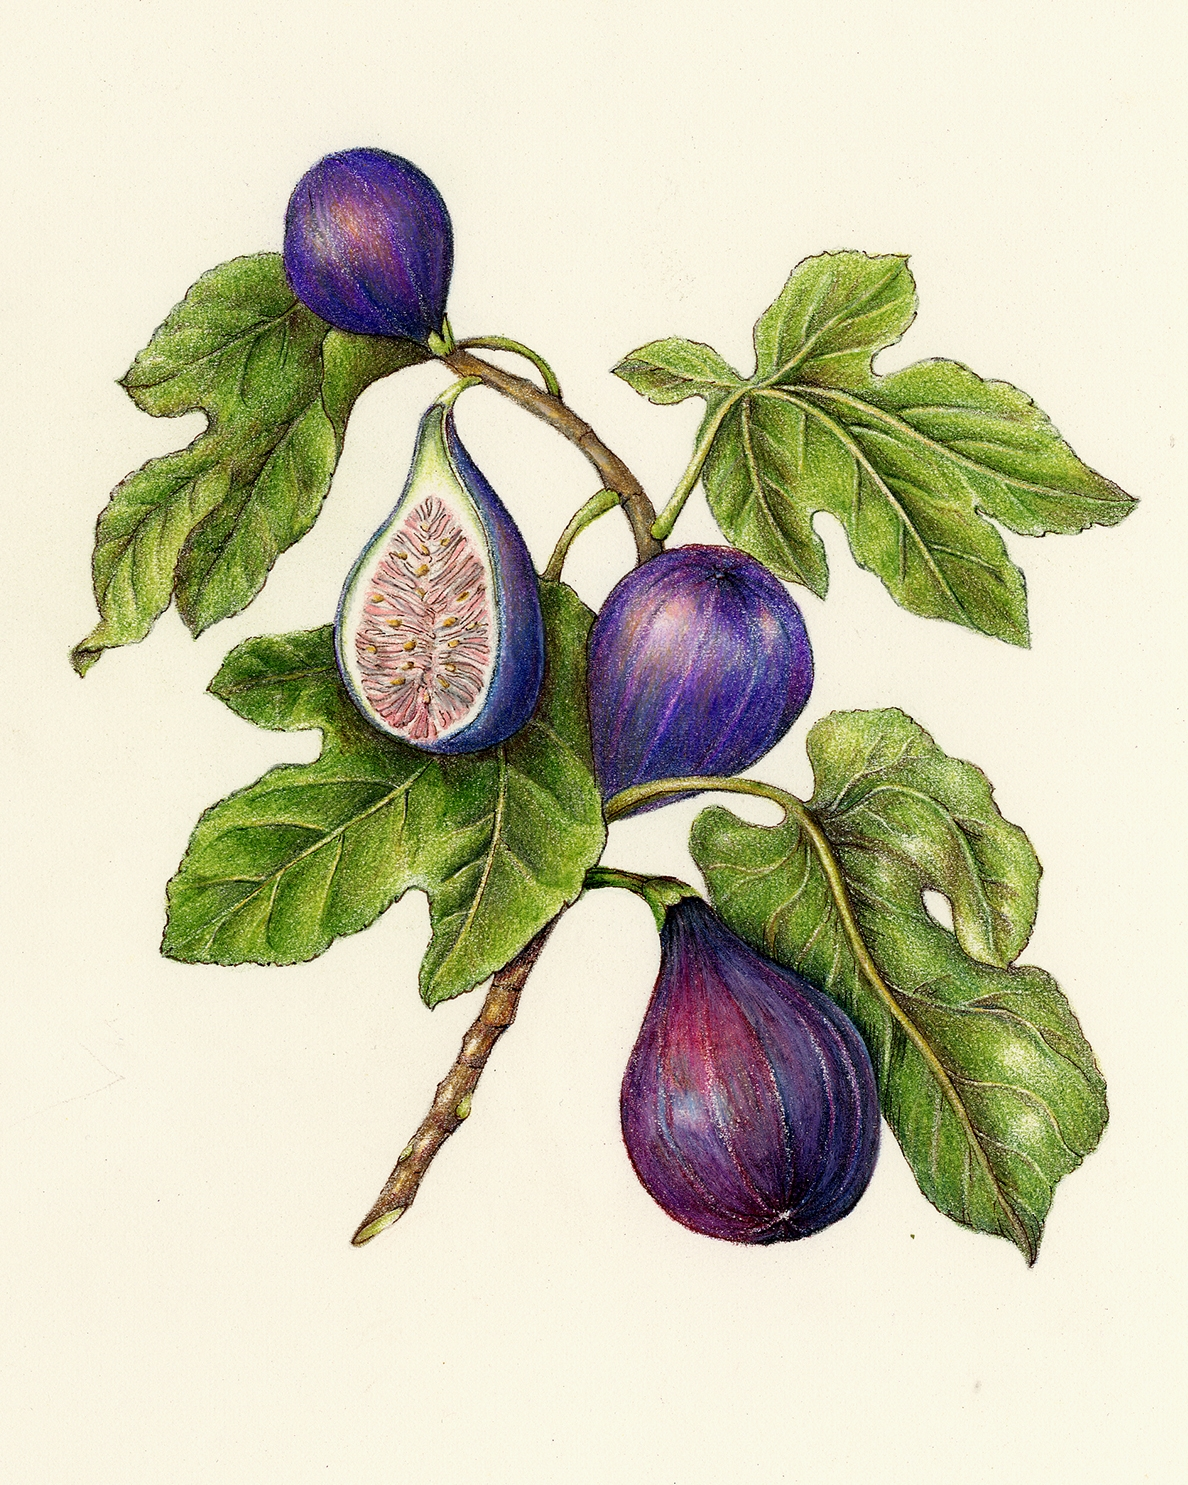 Drawn vegetables fruit and vegetable Botanical Artist illustrations & Fruits